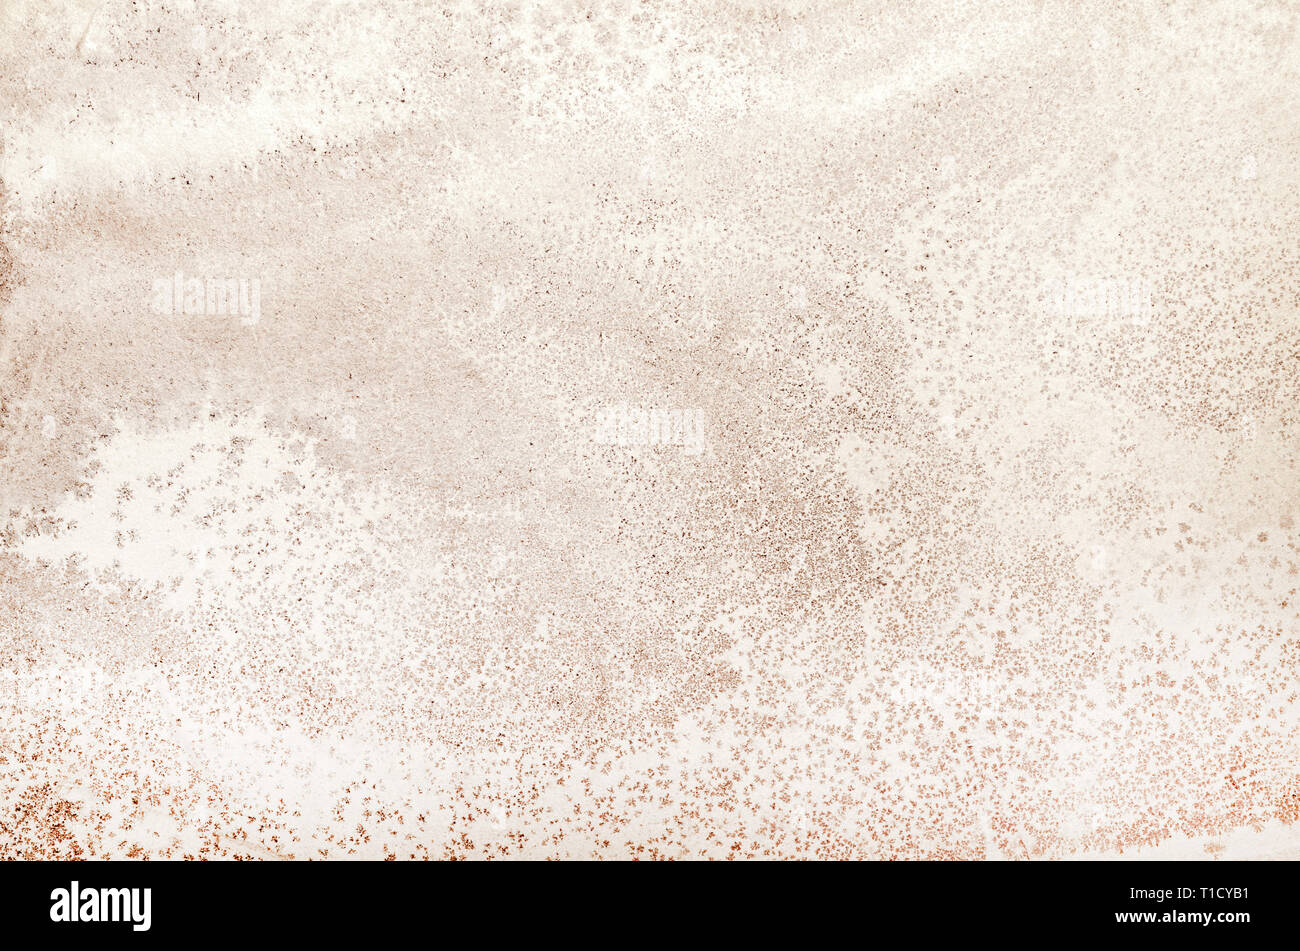 Slate texture on metamorphic rock surface, brown grunge stained pattern on real stone as background, grunge texture overlay template for art work, gru - Stock Image